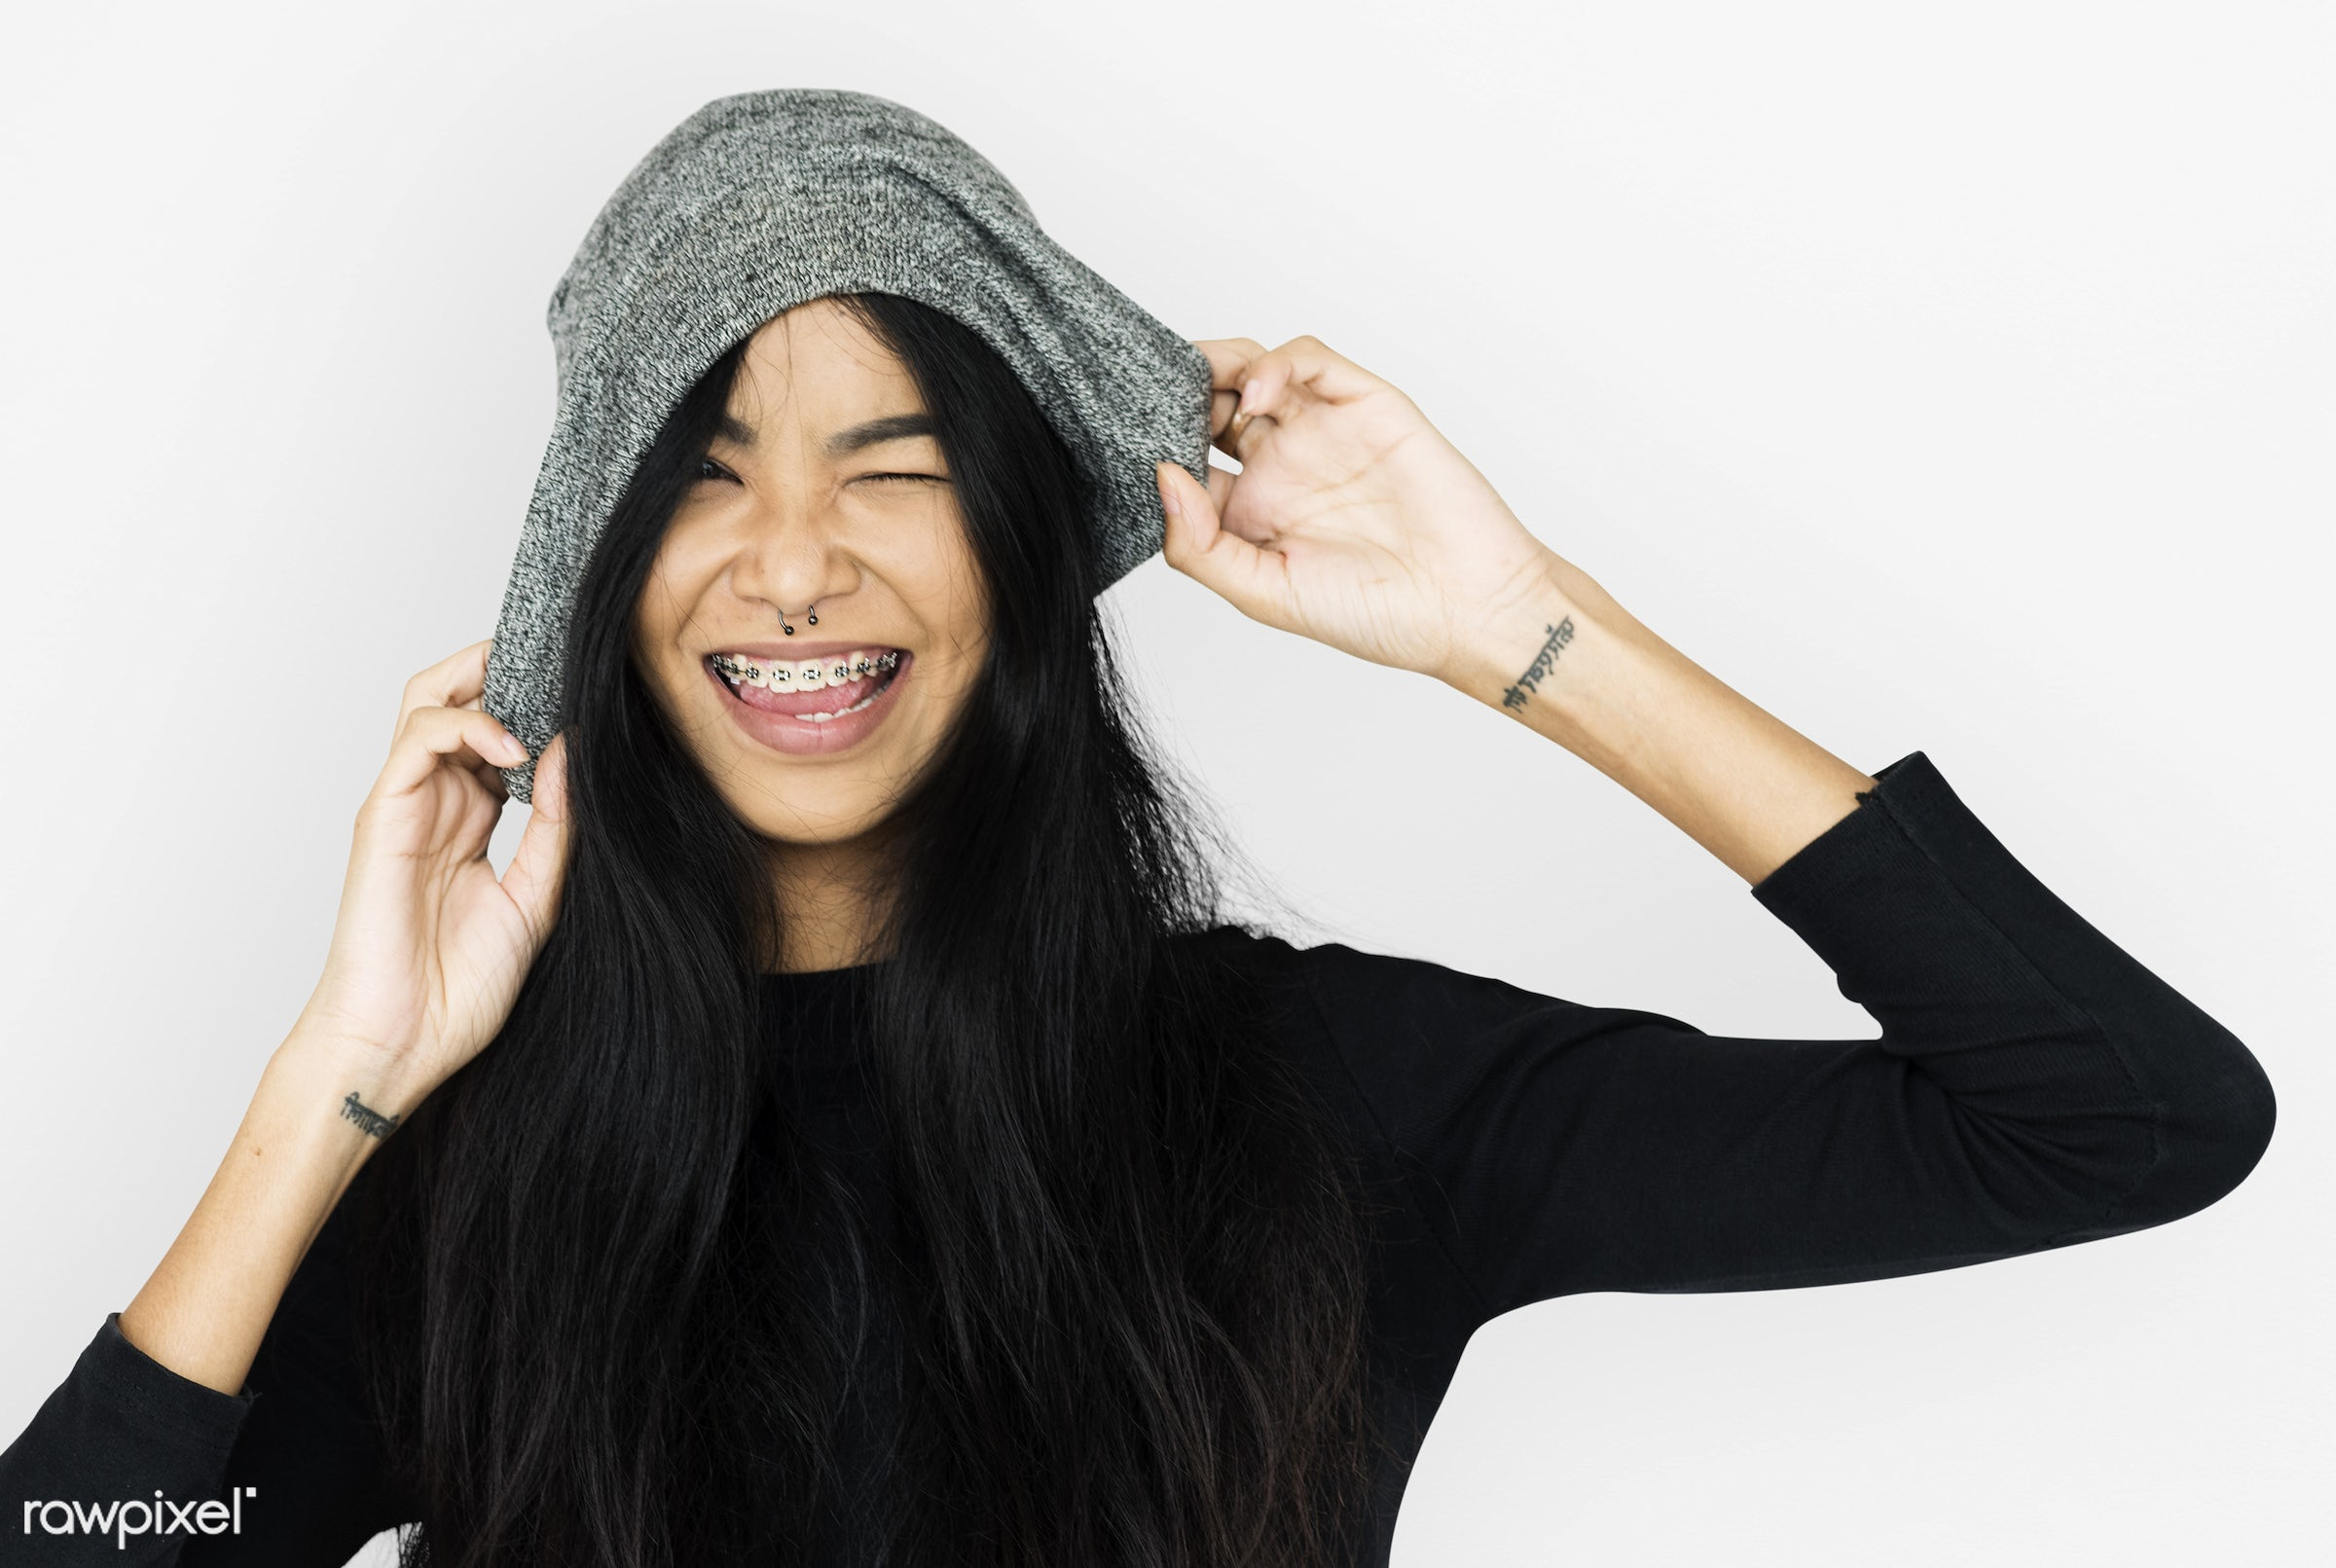 studio, festive, person, playful, lively, beanie, people, dental brace, solo, woman, happy, winking, alone, smiling,...